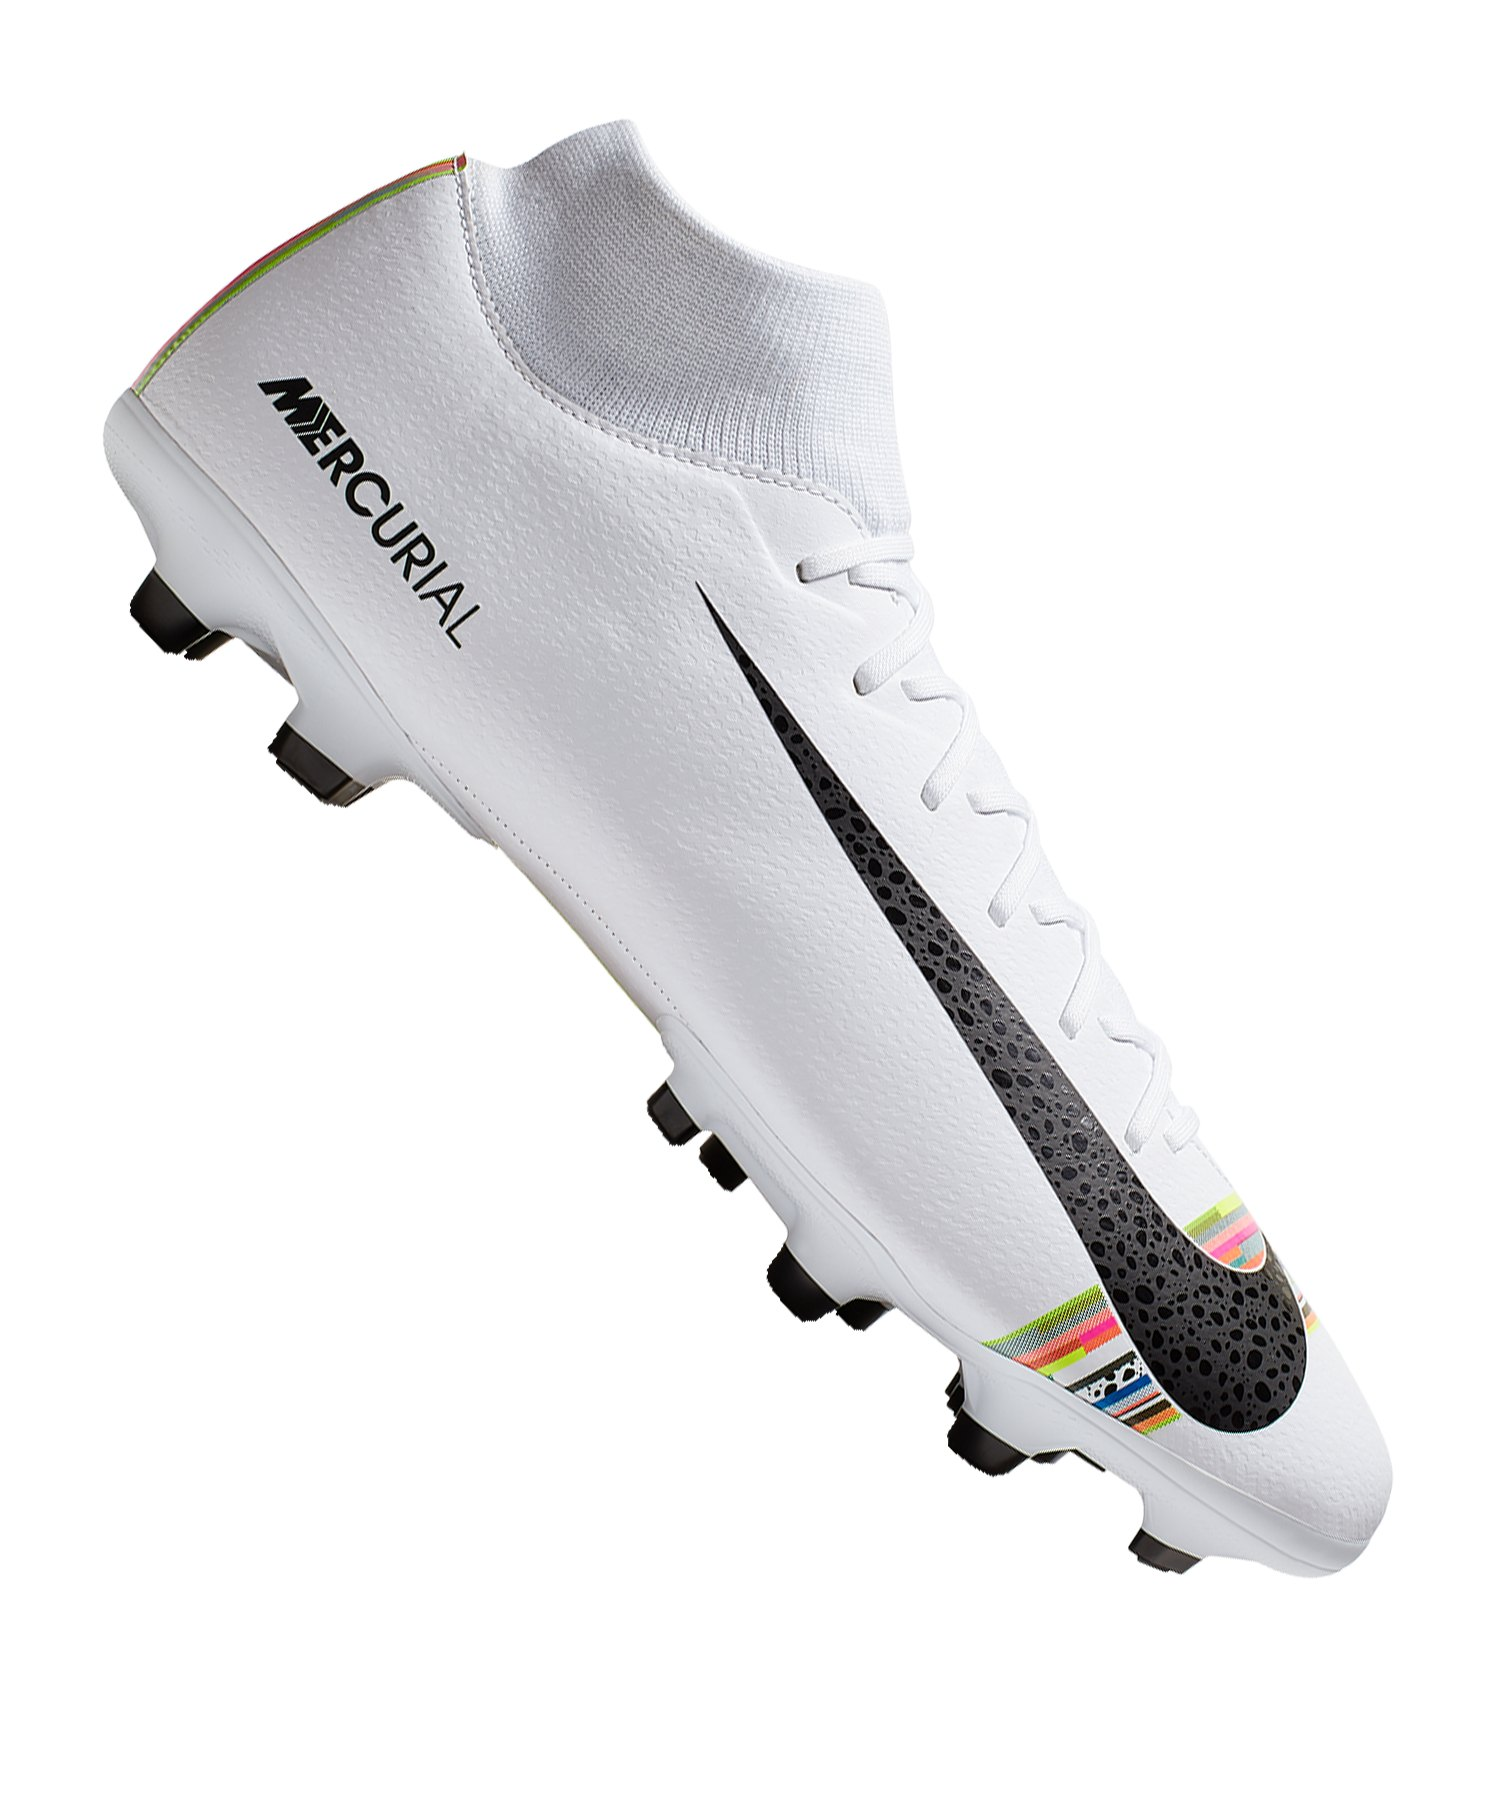 Nike Mercurial Superfly VI Academy MG Weiss F109 - Weiss